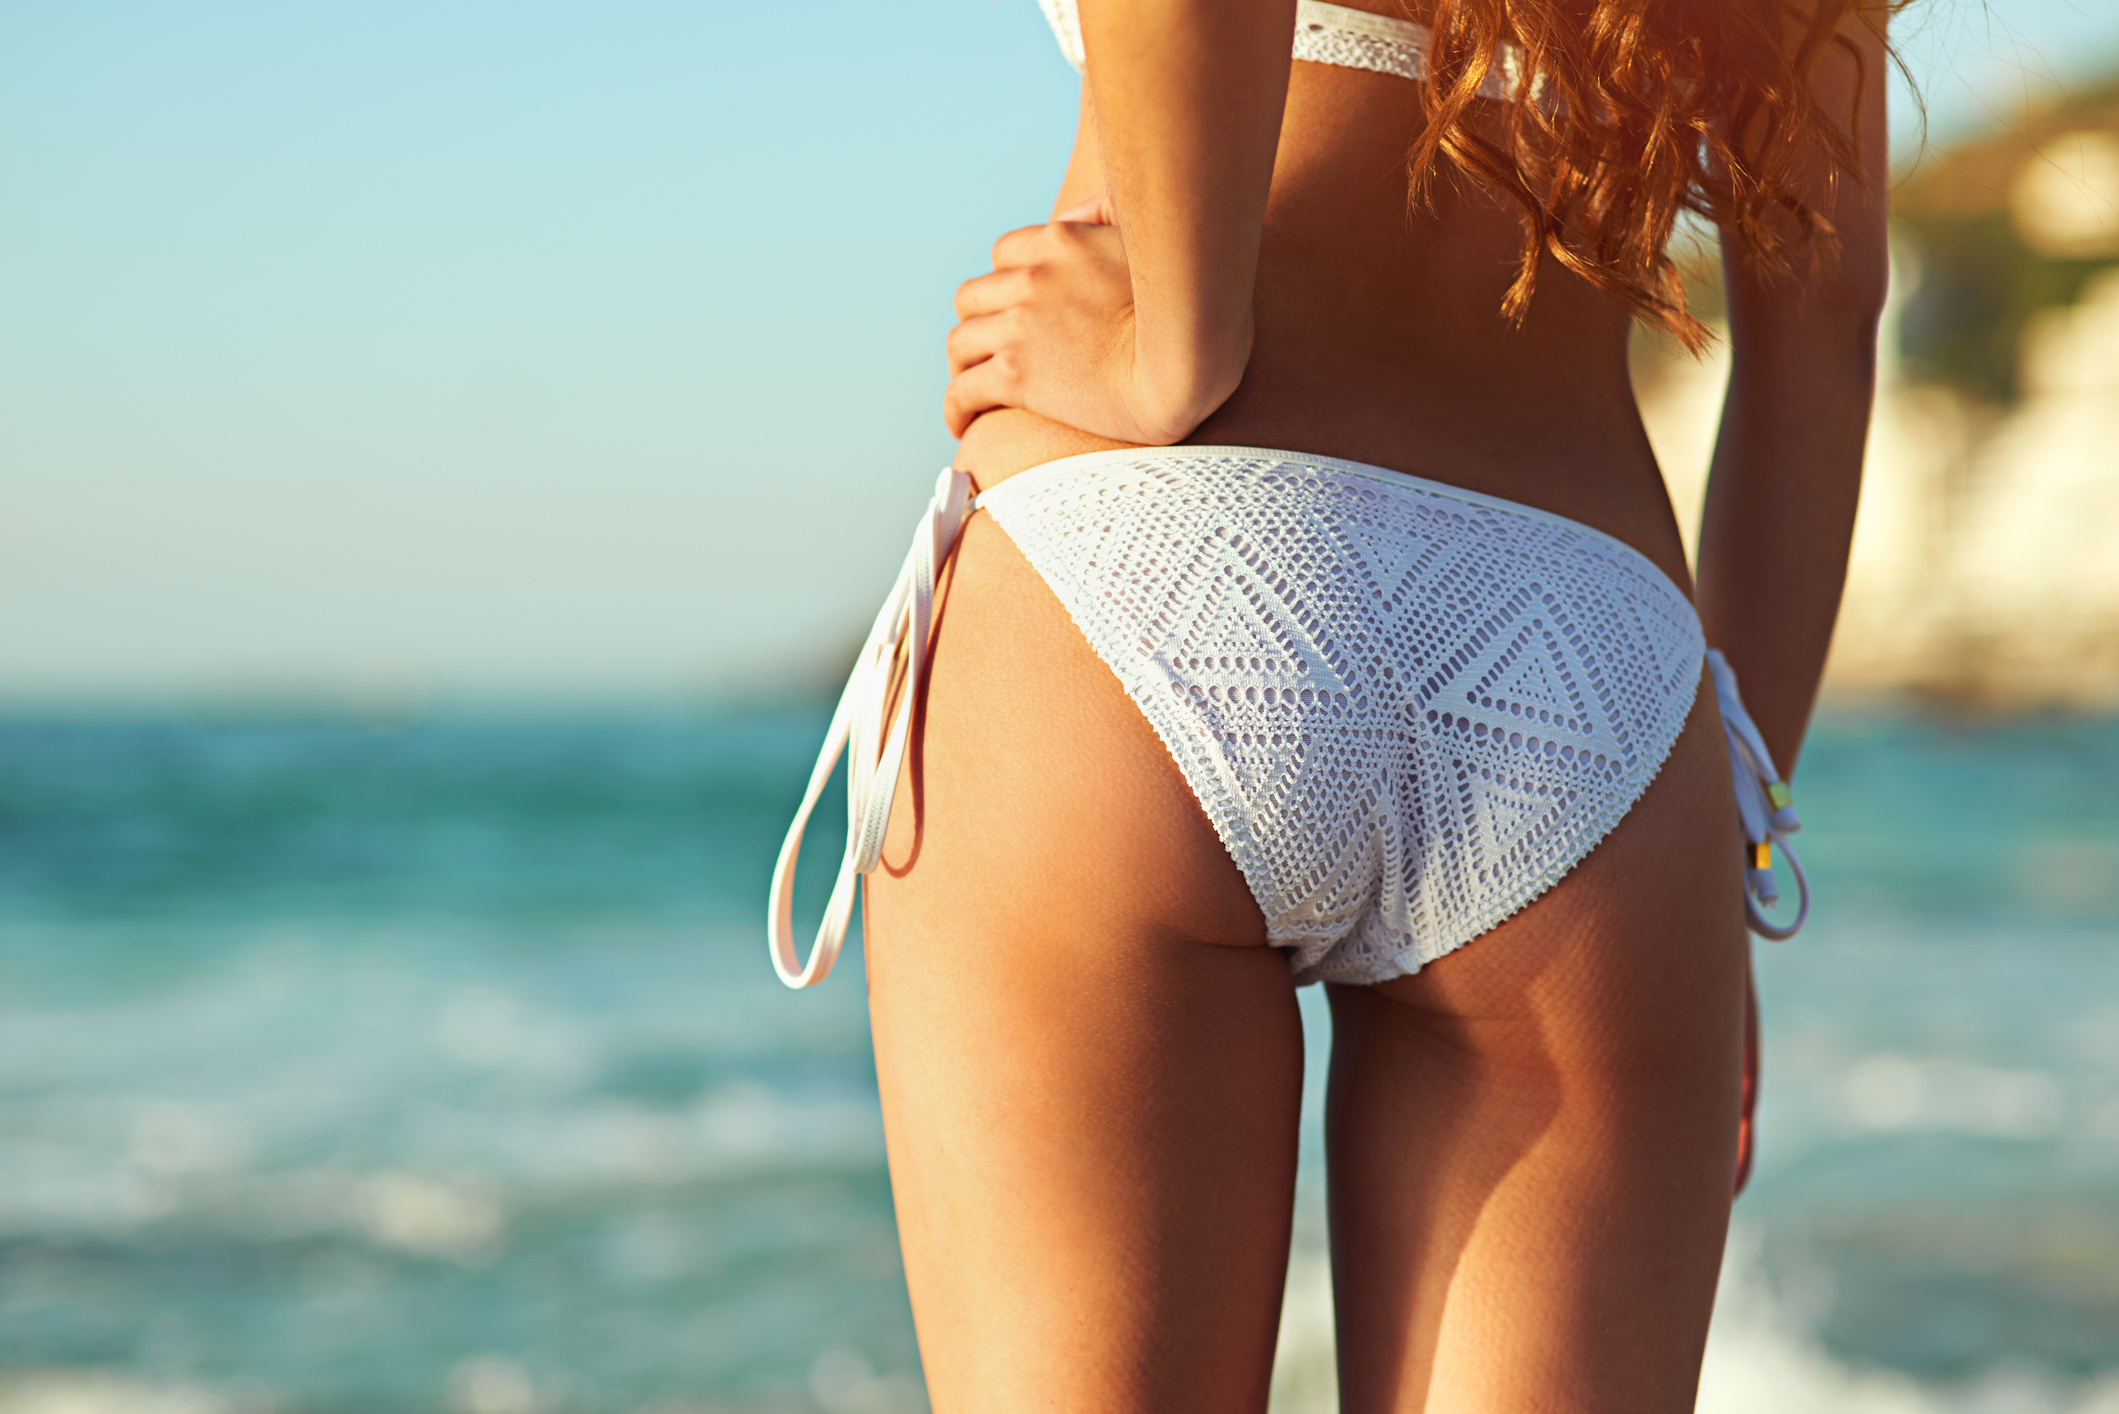 JUVA Skin & Laser Center Blog | Qwo vs other cellulite treatments: Which is best for you?